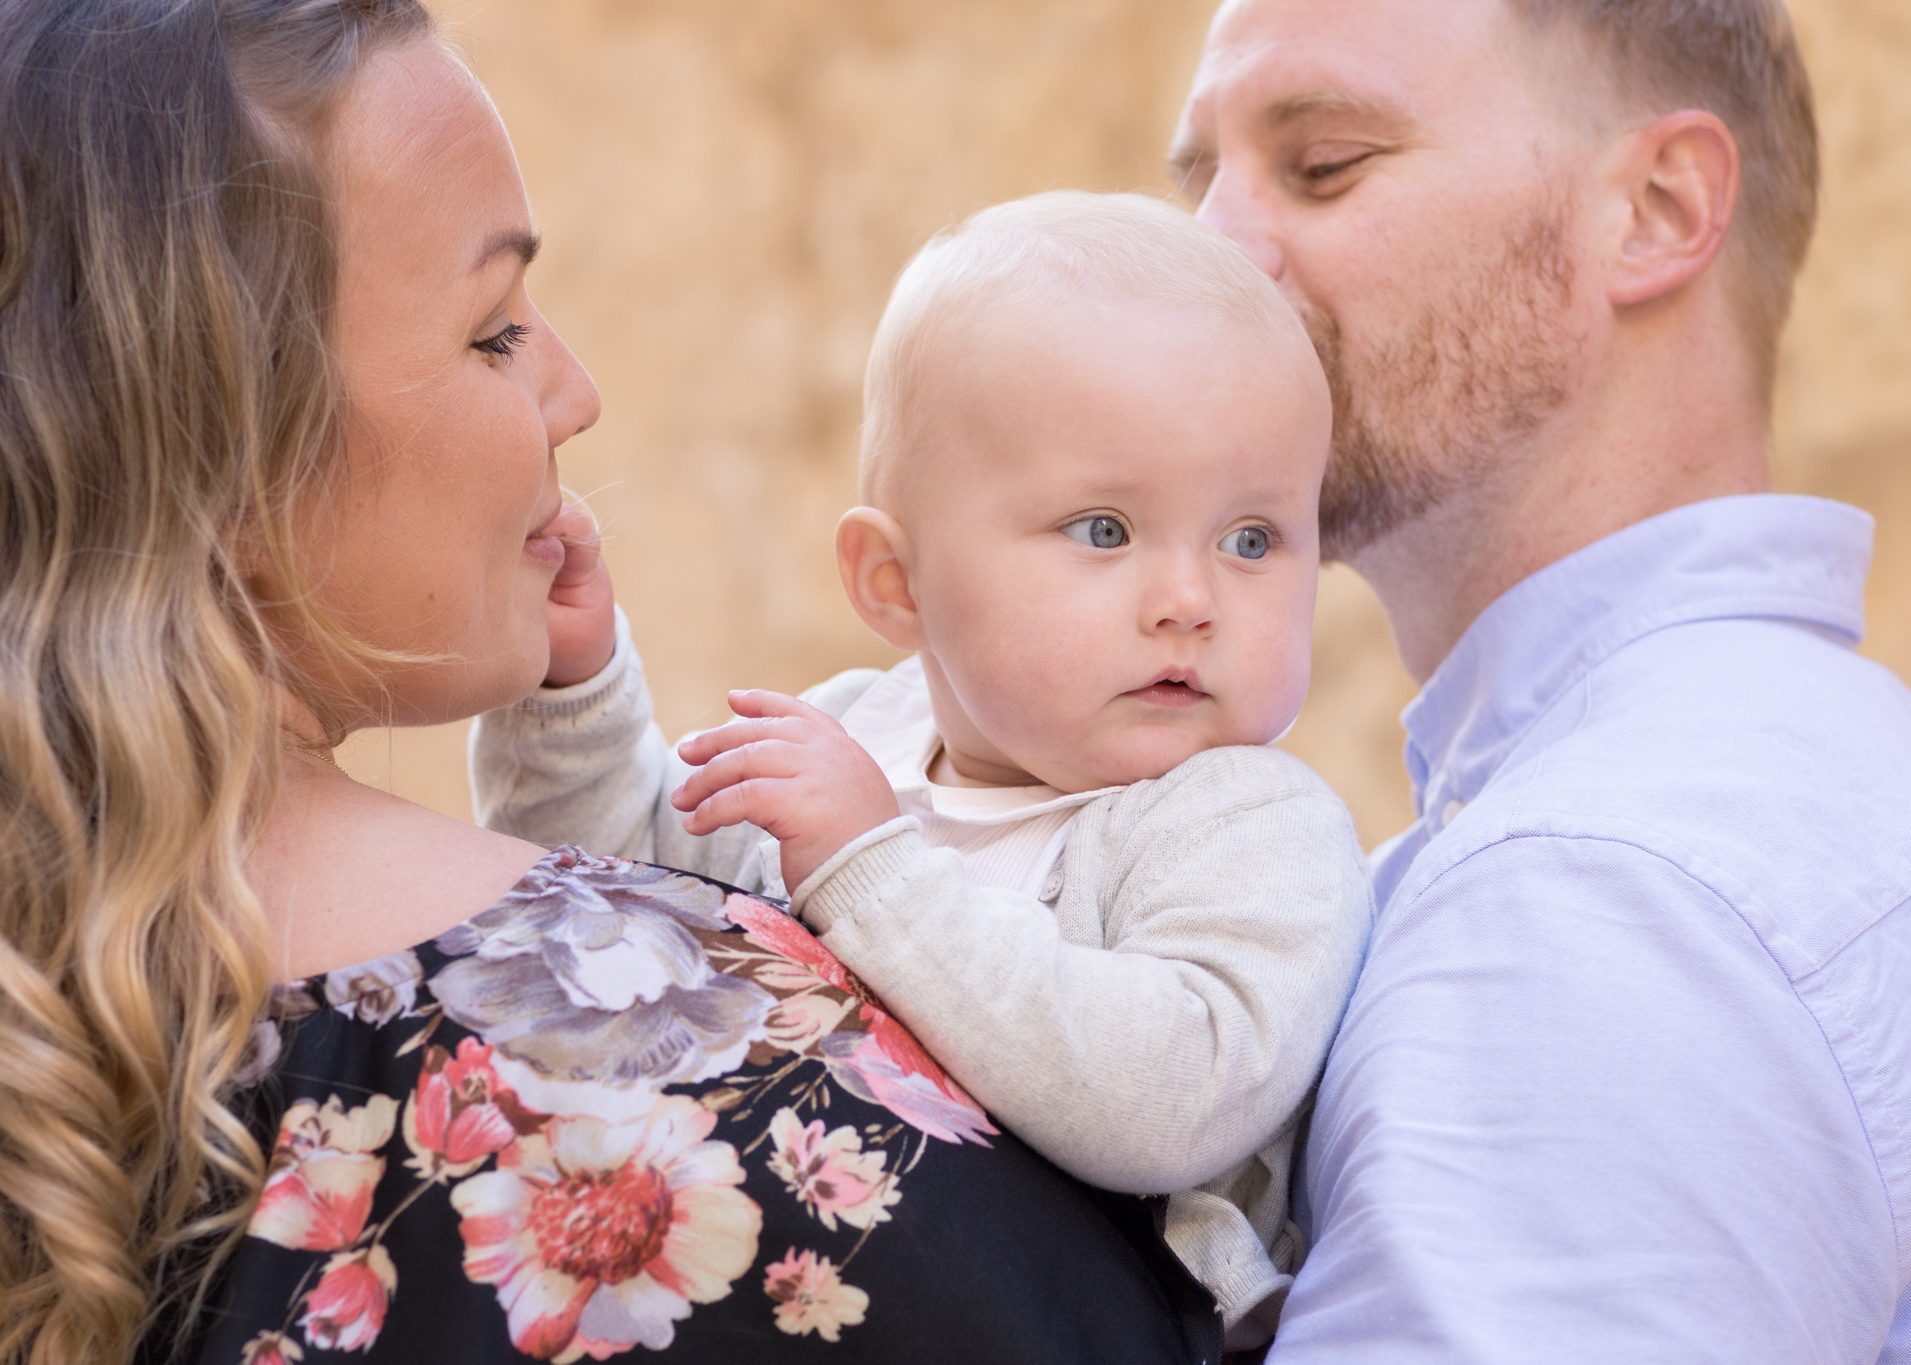 happy family malta, cuddles, photo shoot, natural light photographer, outdoor photography, swedish photographer malta, best photographer malta, family, alley of mdina